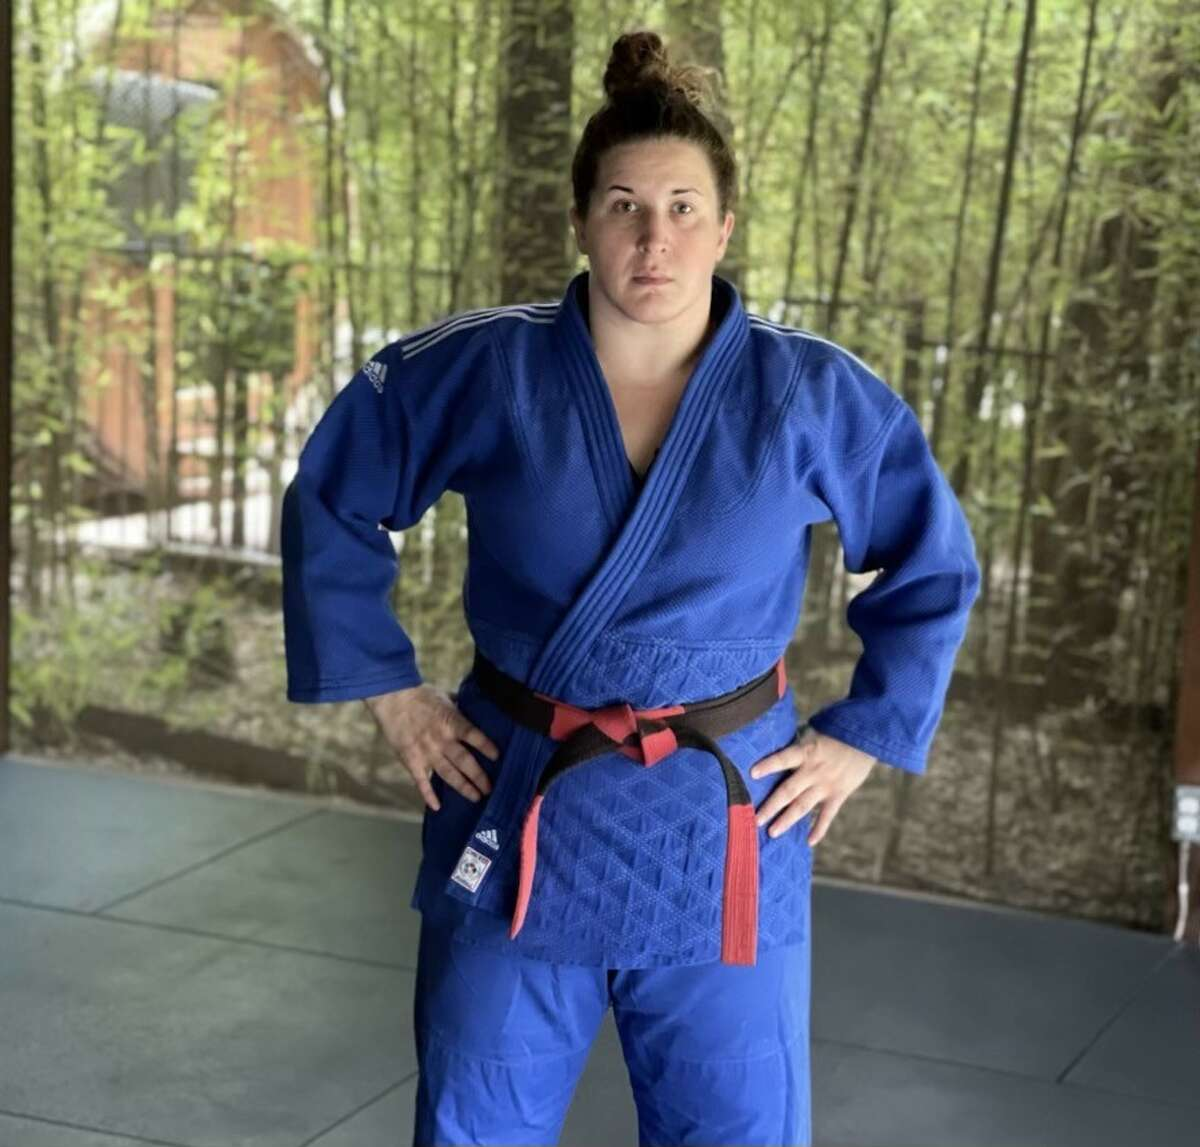 Nina Cutro-Kelly says the fifth time was the charm for qualifying to compete at the Olympics. The local judoka found out she qualified for the global stage on July 2. After a whirlwind few weeks, shewill be taking flight from San Antonio to Tokyo a week from today for her Olympics debut. Cutro-Kelly says she hasn't had much time to breath since qualifying, but spent some time chatting with MySAahead of the competition.